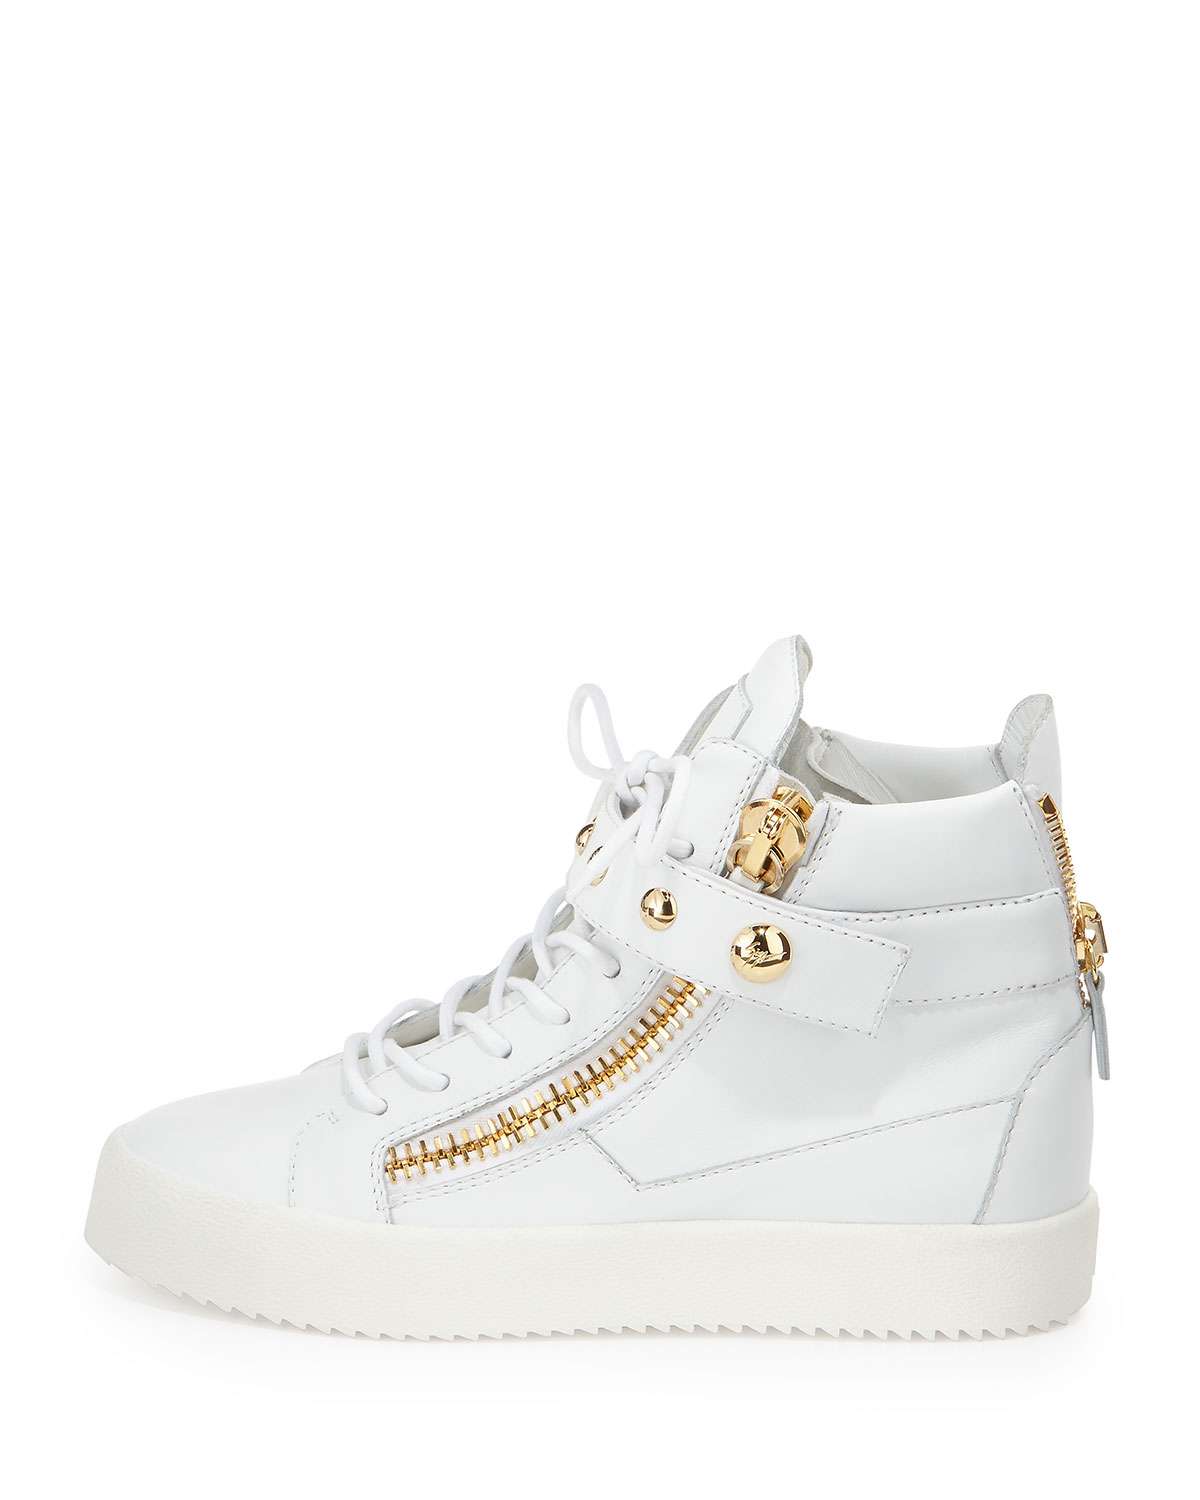 2dd956f97e6ba Giuseppe Zanotti Lamaylorenz Leather High-Top Sneaker, White | Neiman Marcus